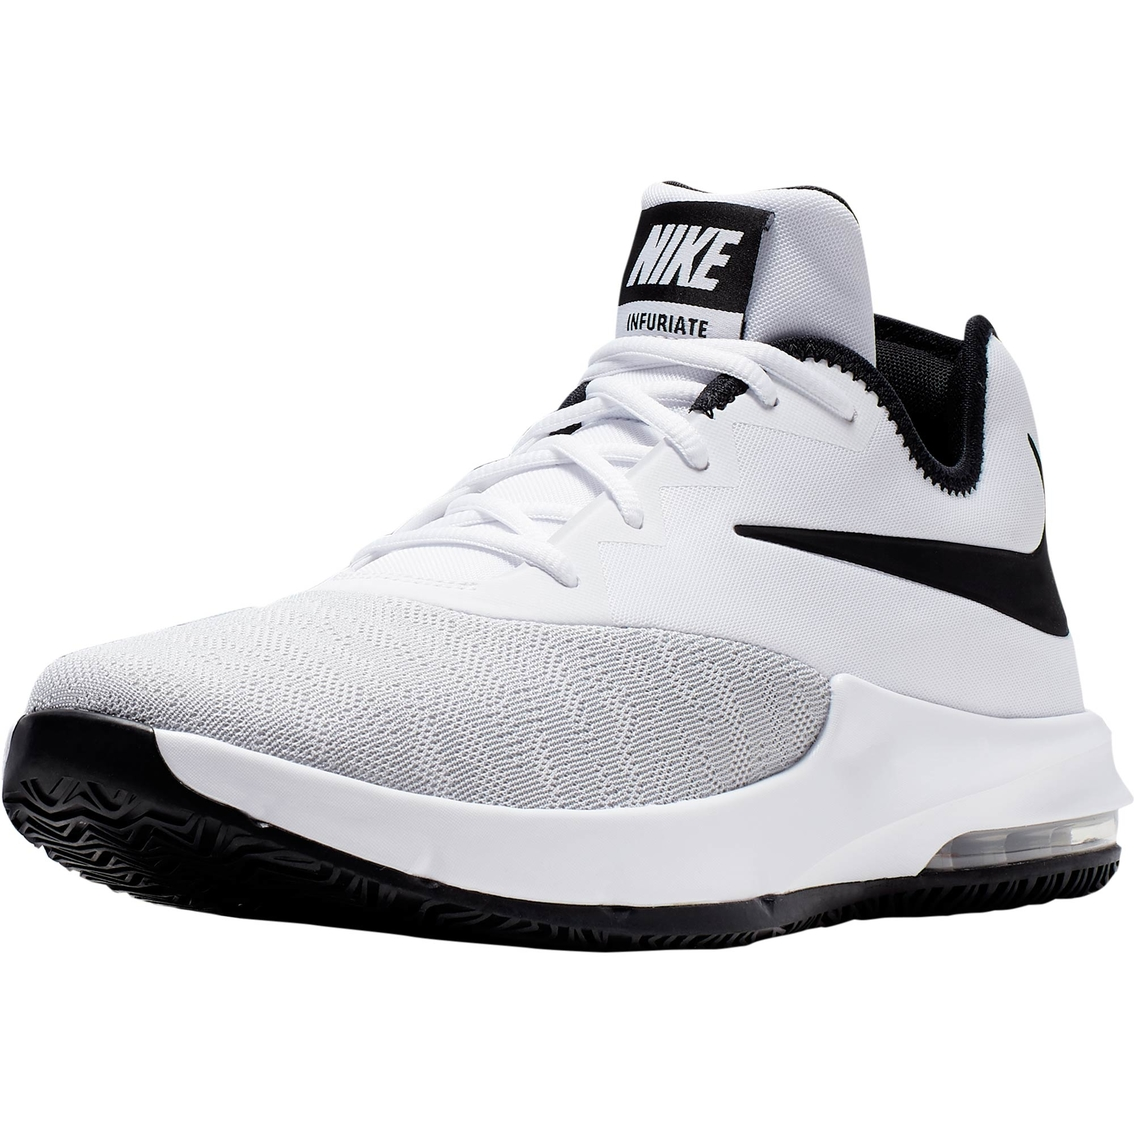 competitive price ef139 7ec0a Nike Men s Air Max Infuriate III Low Top Shoes